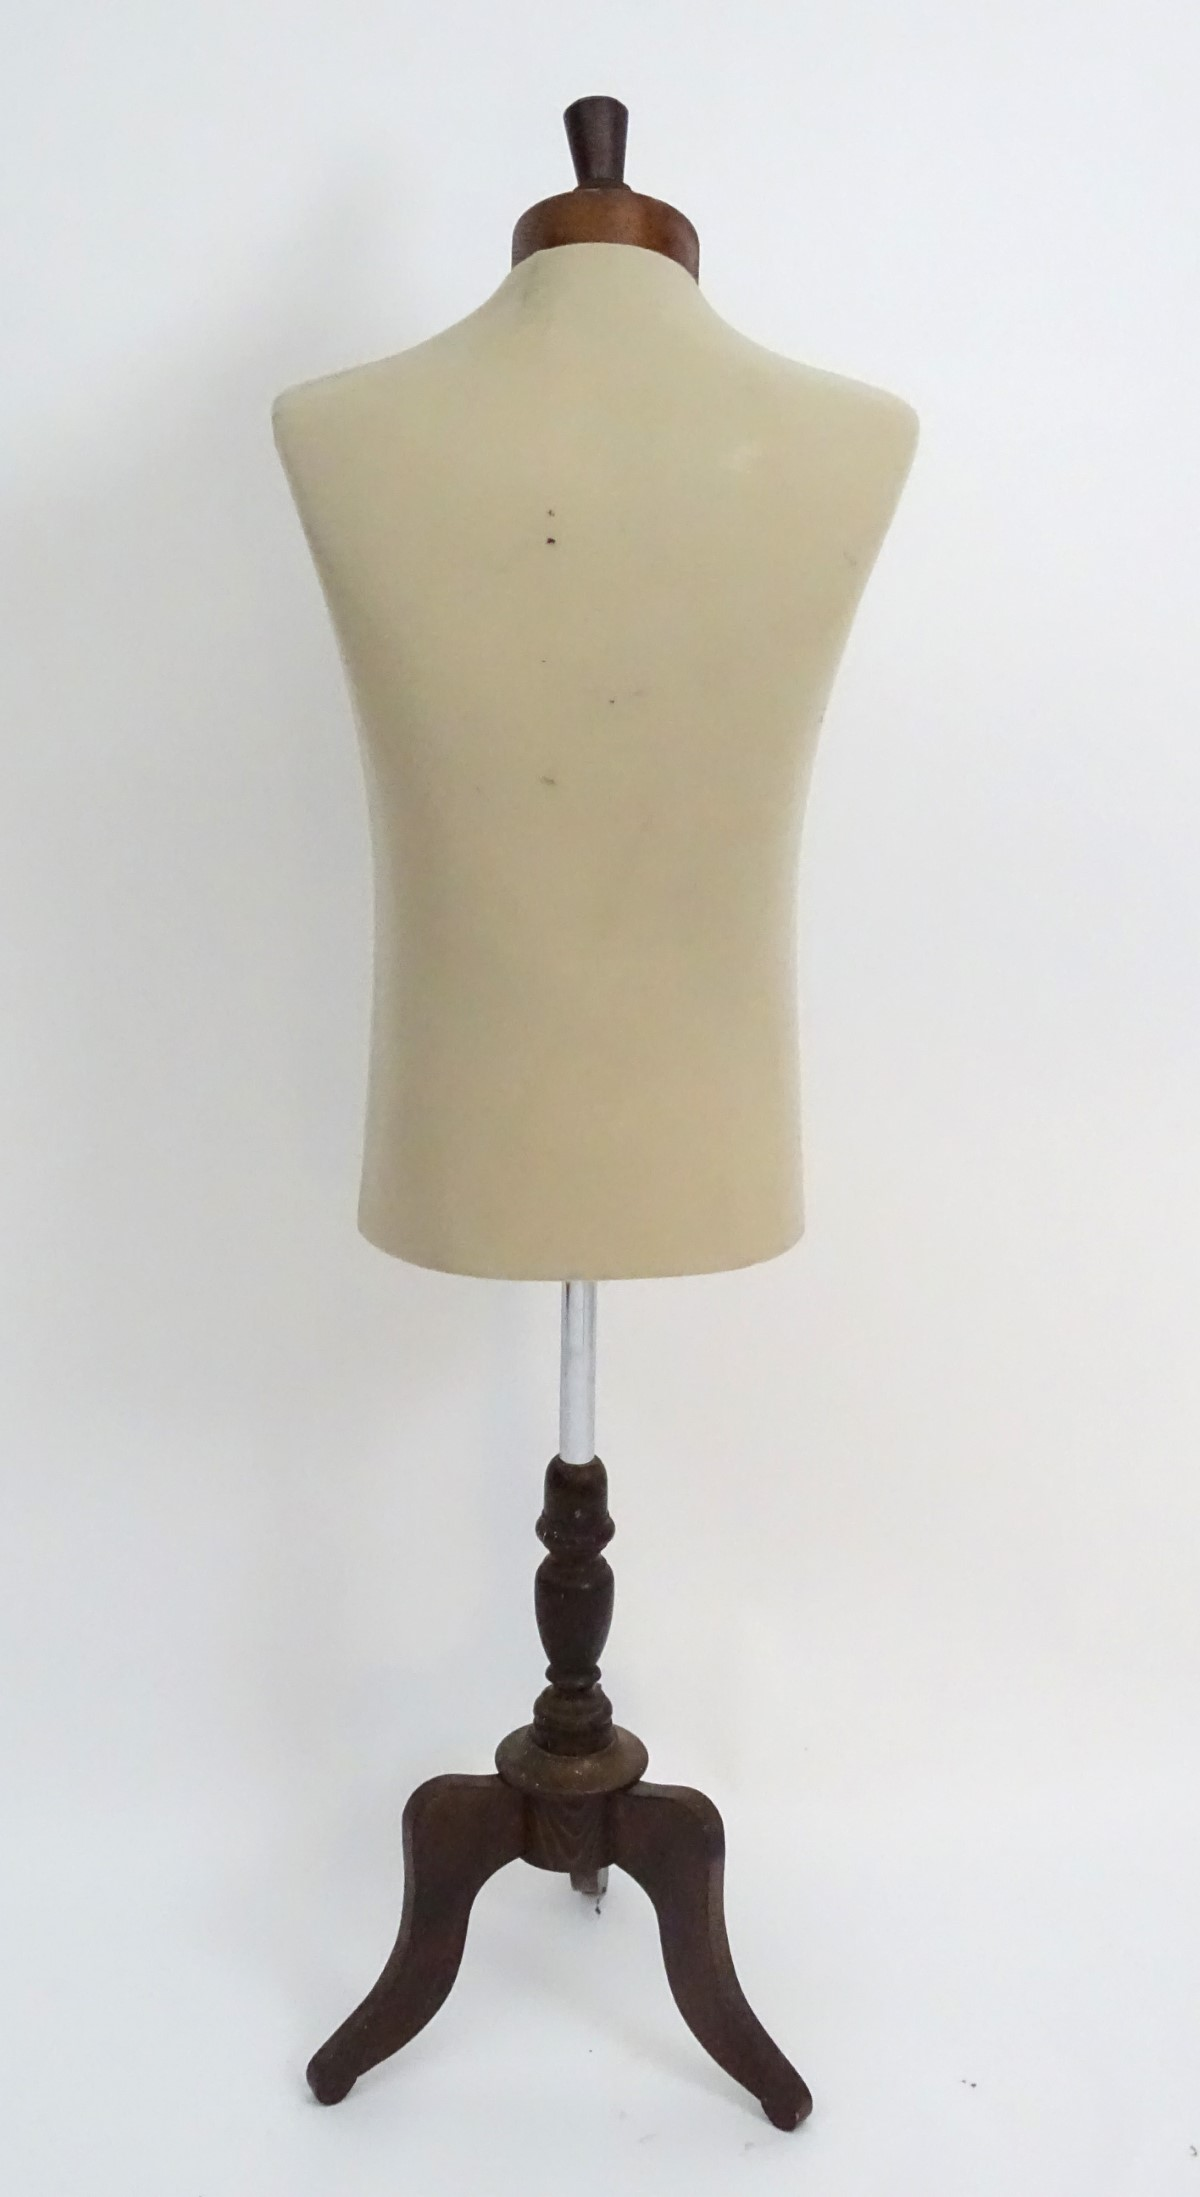 """Lot 18 - Dressmakers dummy, a mannequin on a tripod stand. 53"""" high."""